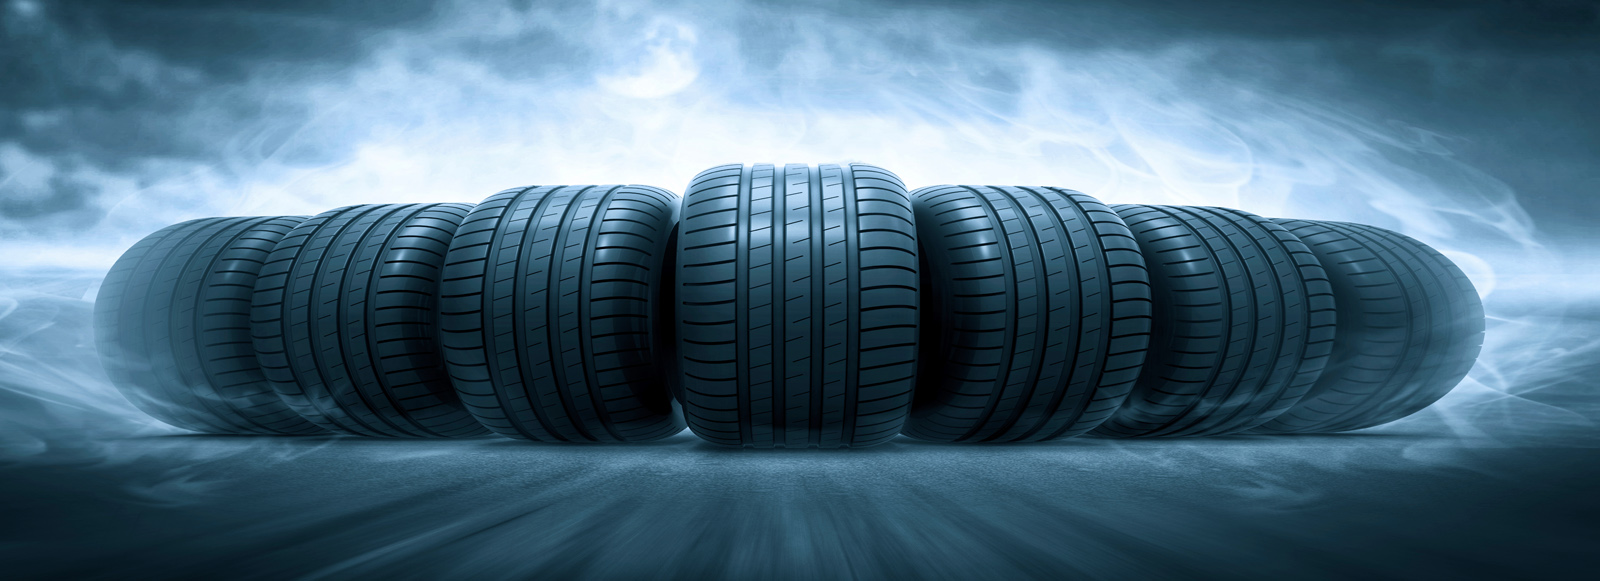 Dennis auto repair - Prolong The Life Of Your Tires